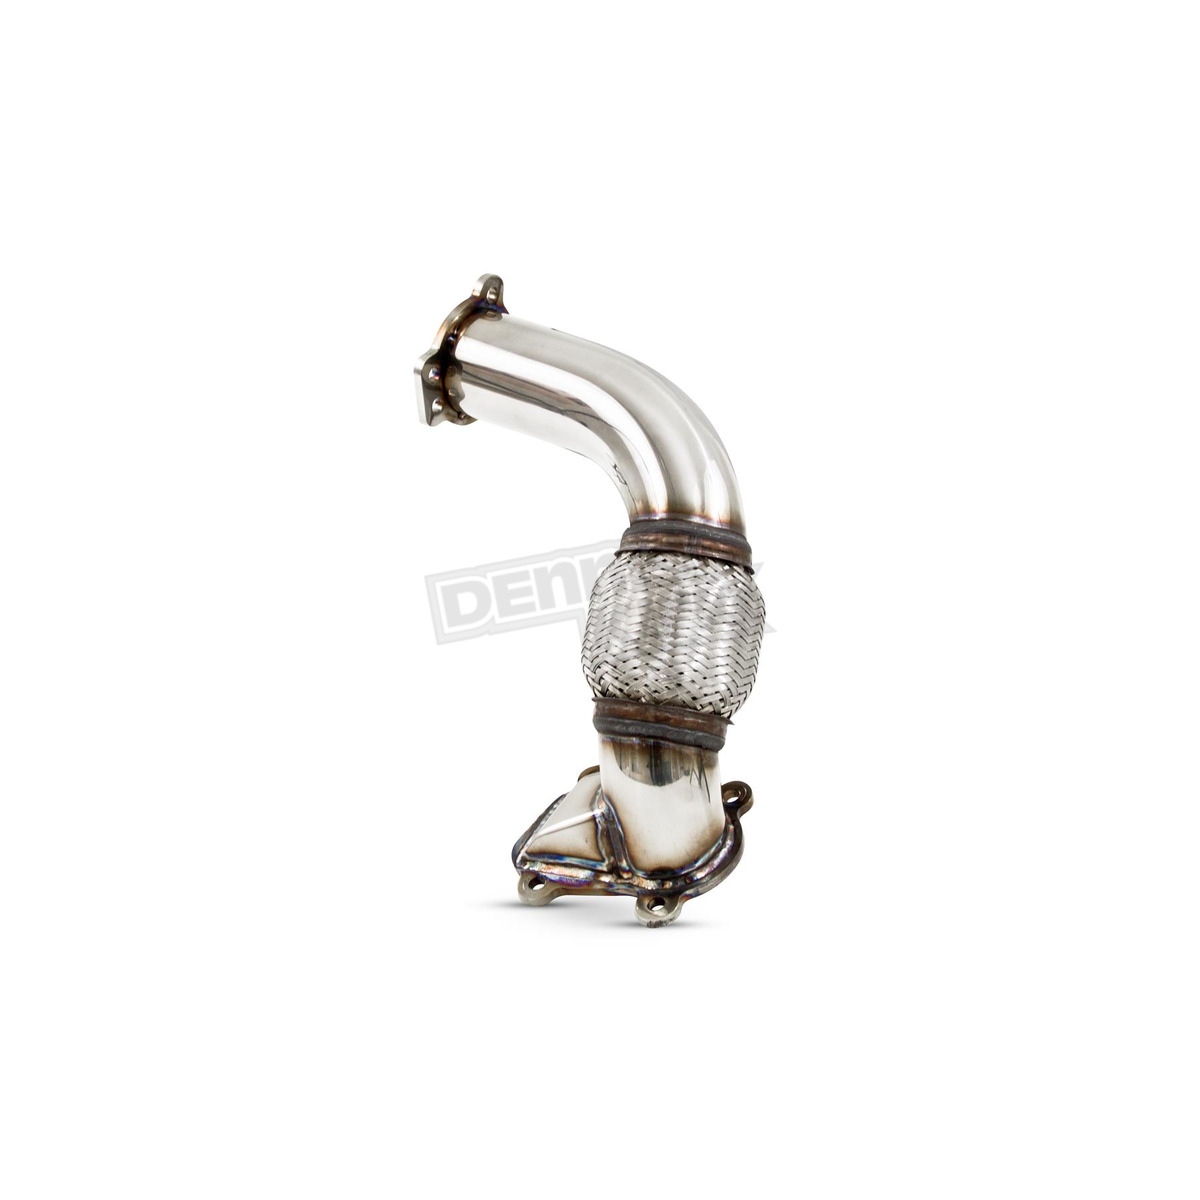 Mbrp High Flow Turbo Outlet